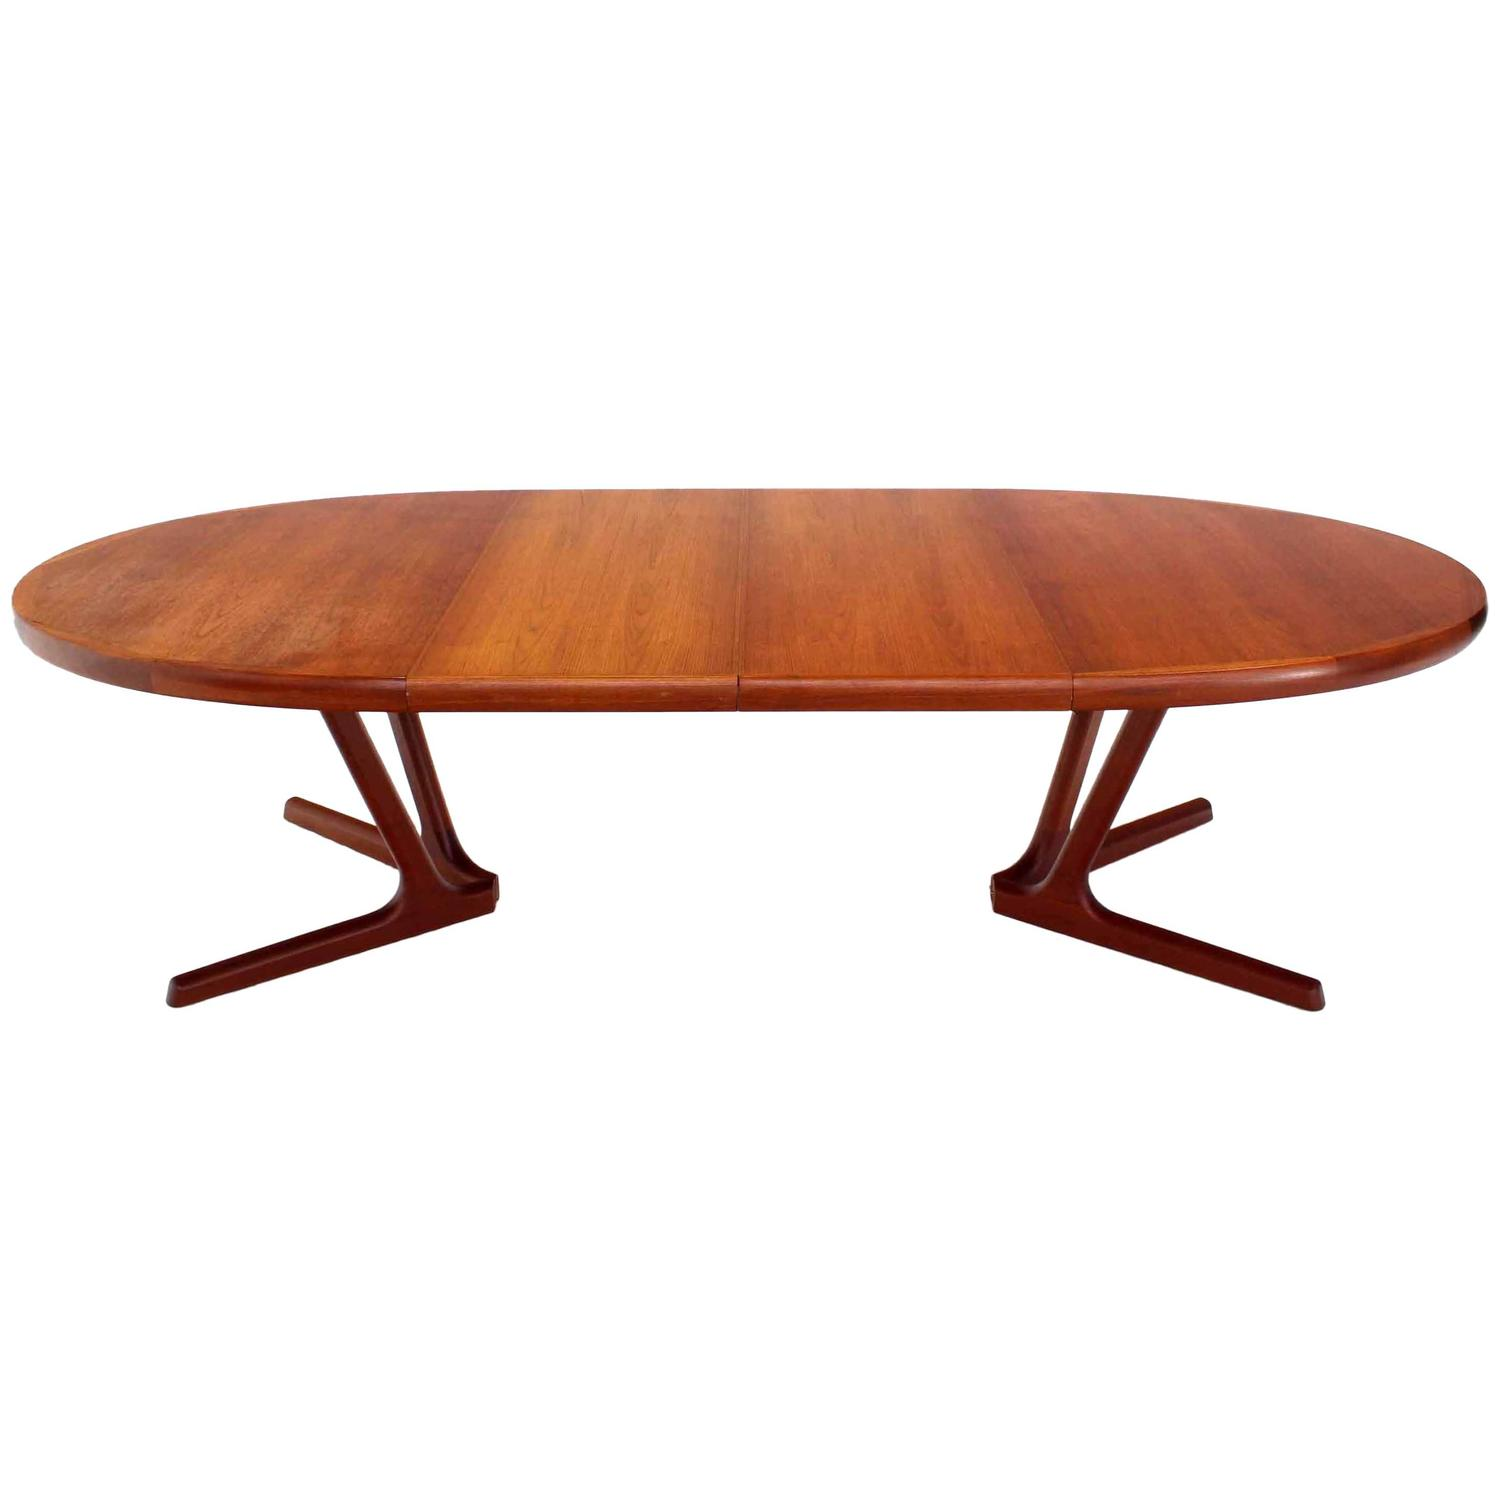 sculptural solid teak base danish modern oval dining table at 1stdibs